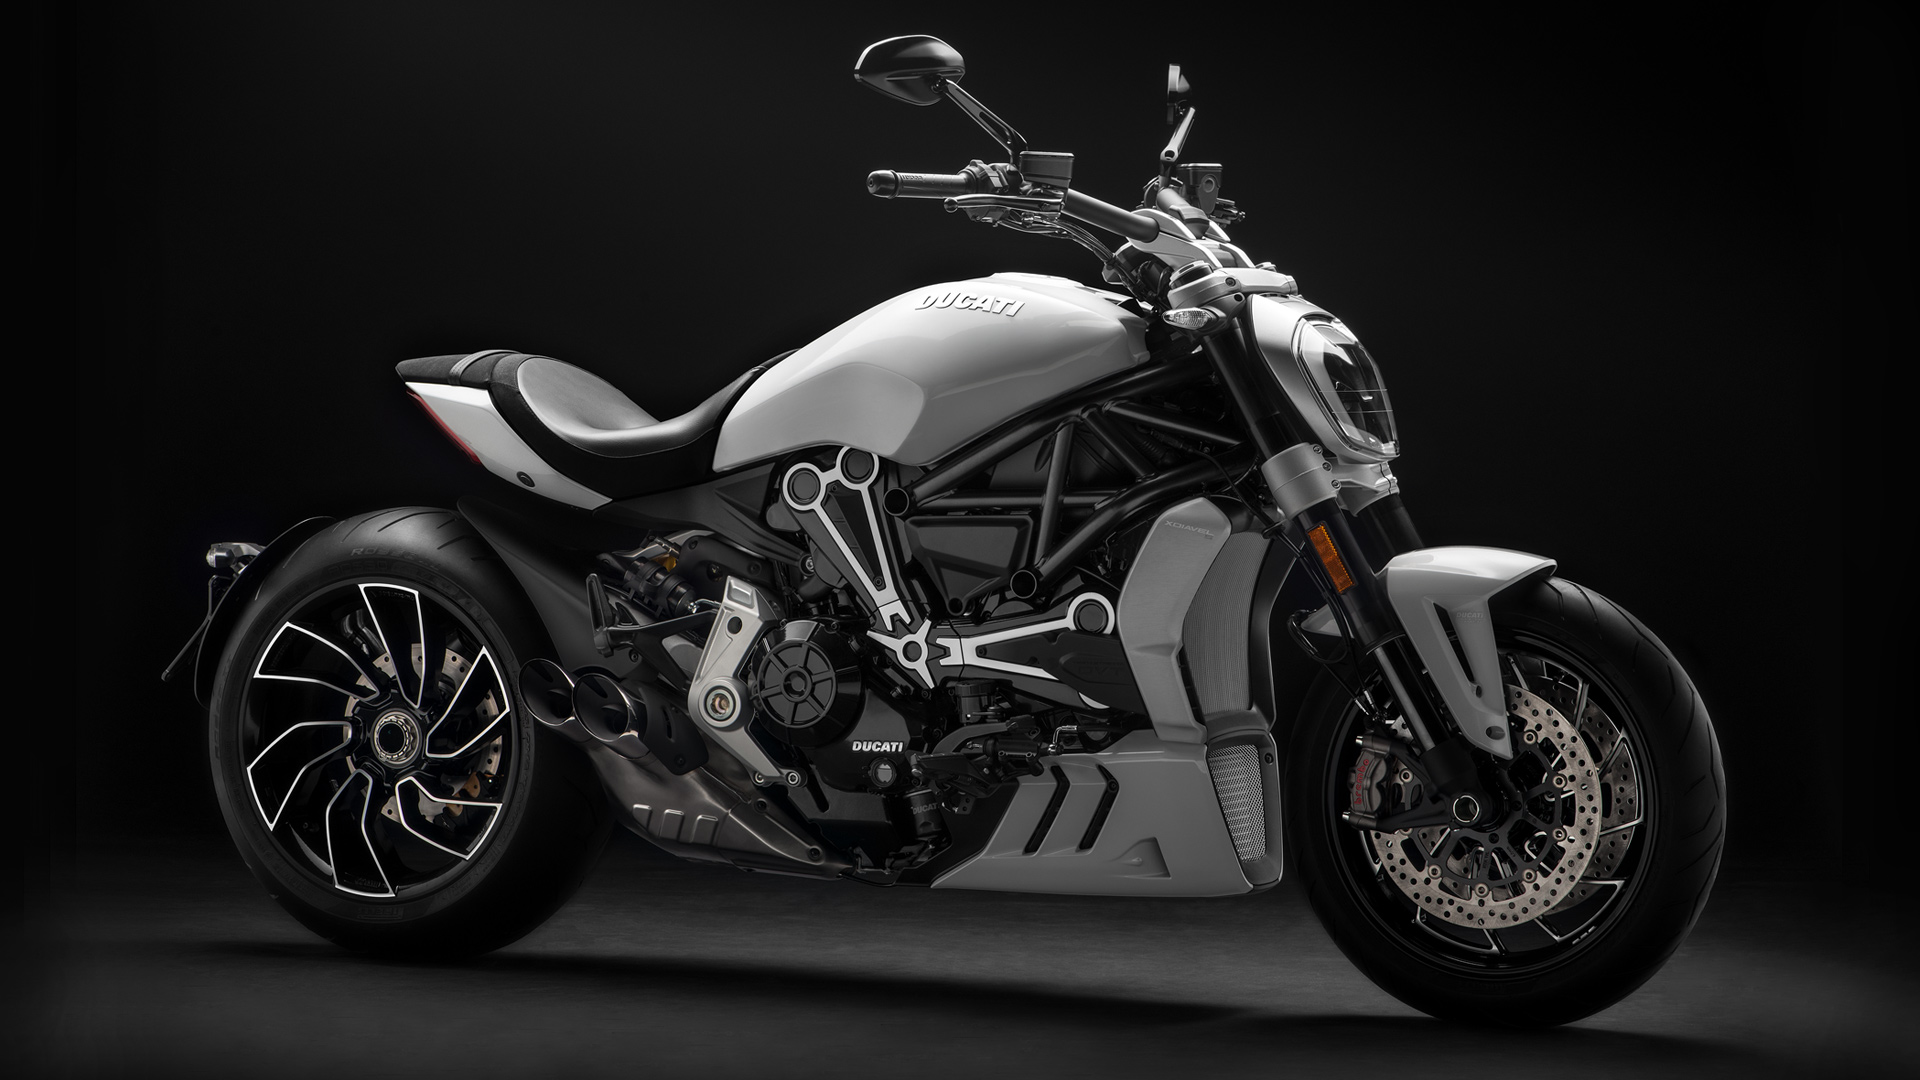 ducati xdiavel unique sport cruiser bikesthe new dark brown seat completes the sophisticated, sporty colour scheme